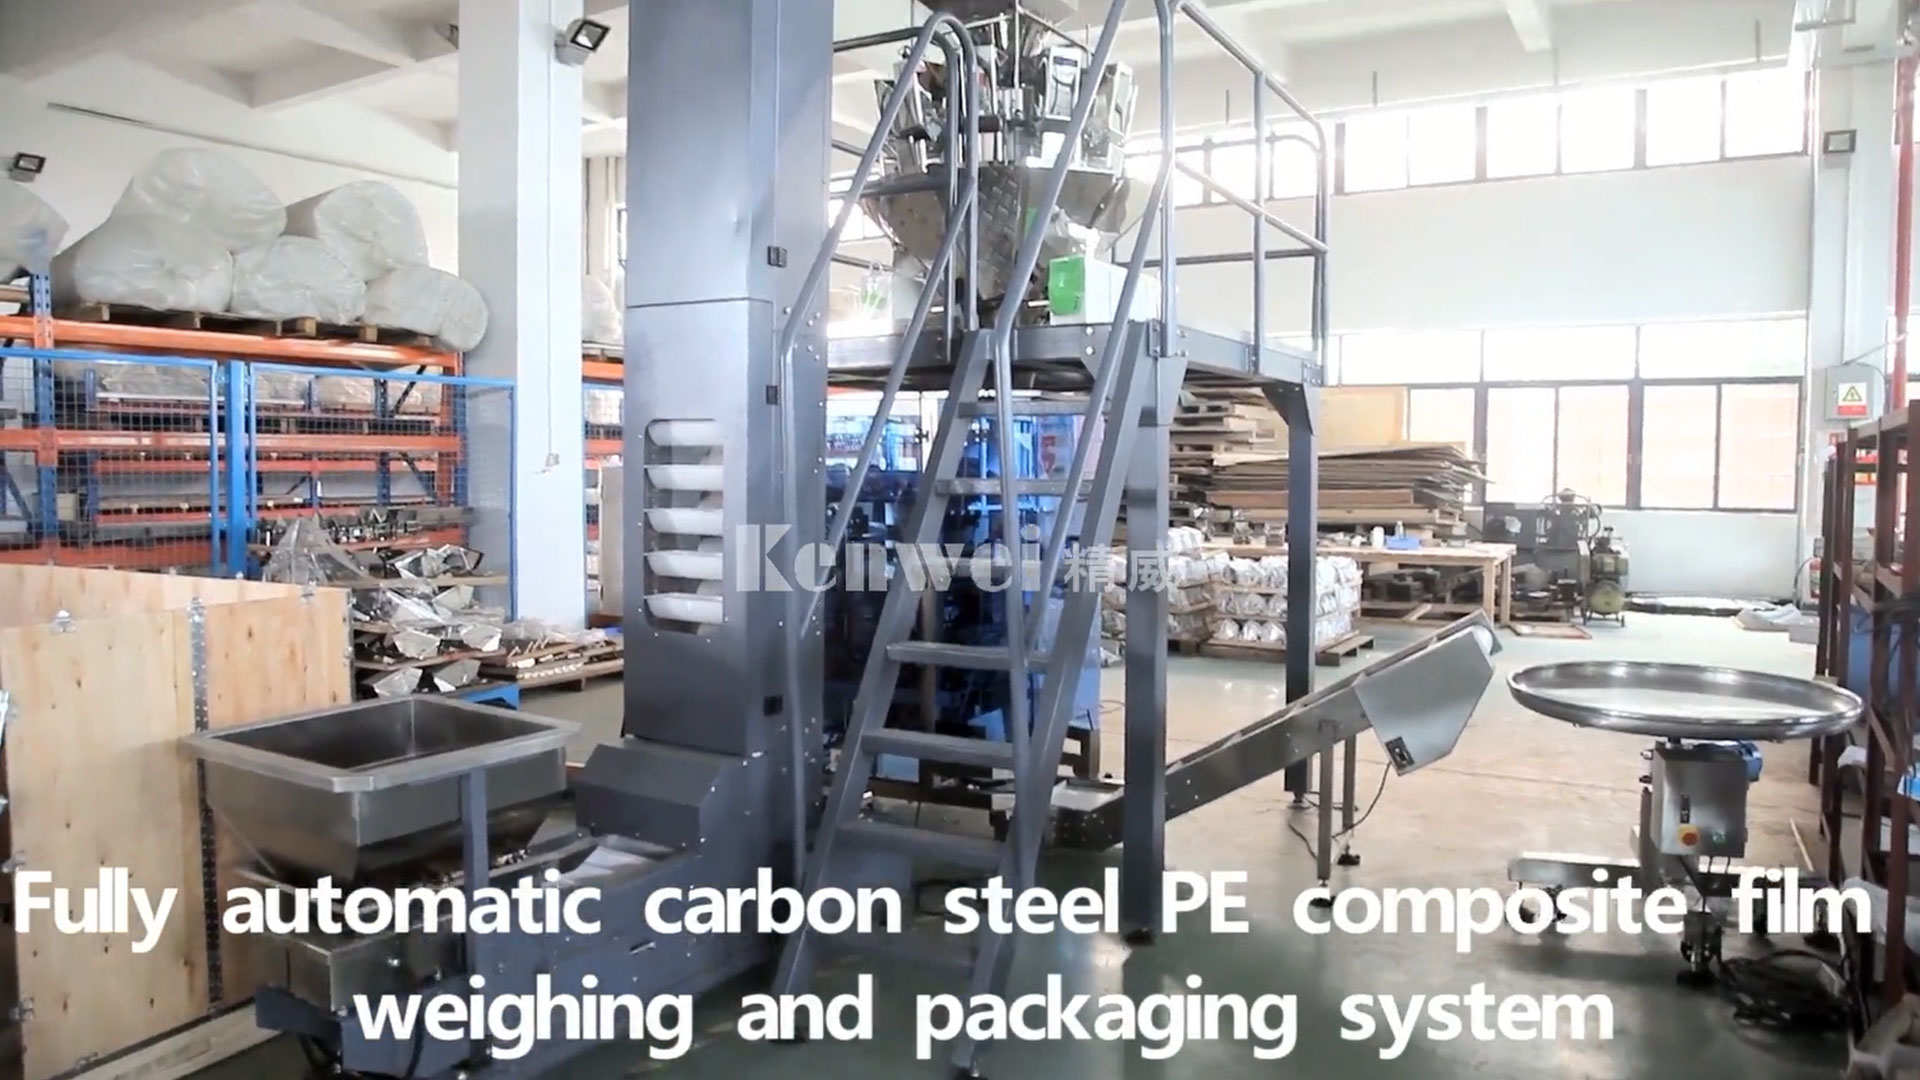 Automatic Carbon Steel PE Film Composite Film Weighing and Packaging System-Kenwei